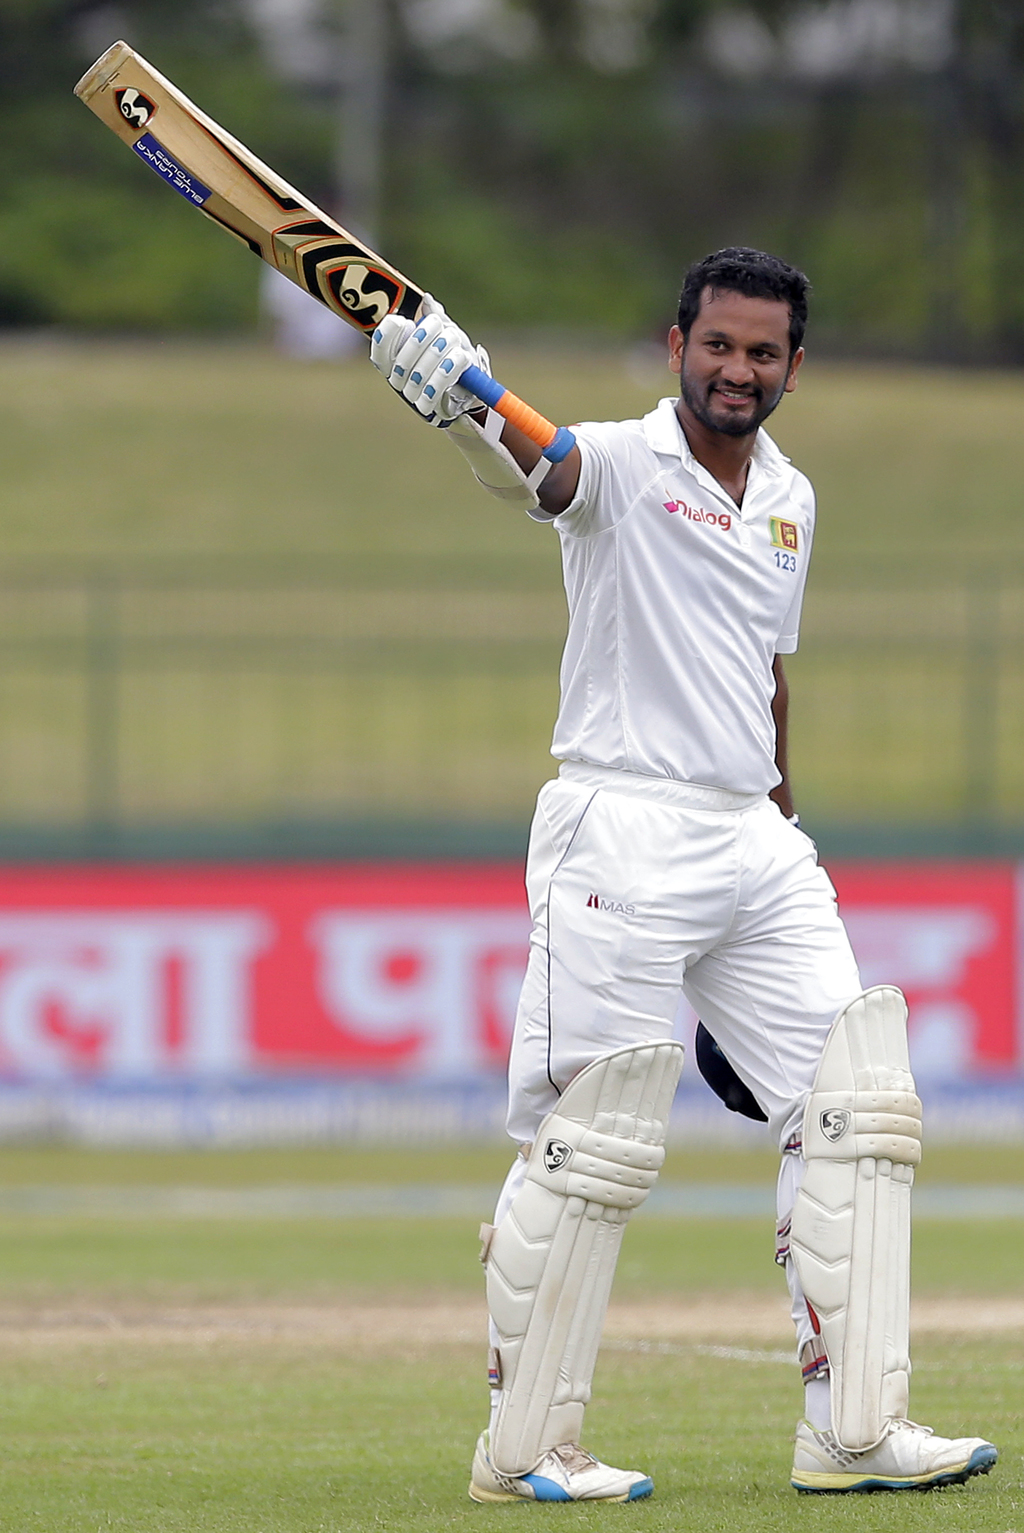 Sri Lanka's Dimuth Karunaratne raises his bat to celebrate scoring a century during the fourth day's play of their second cricket test match against I...